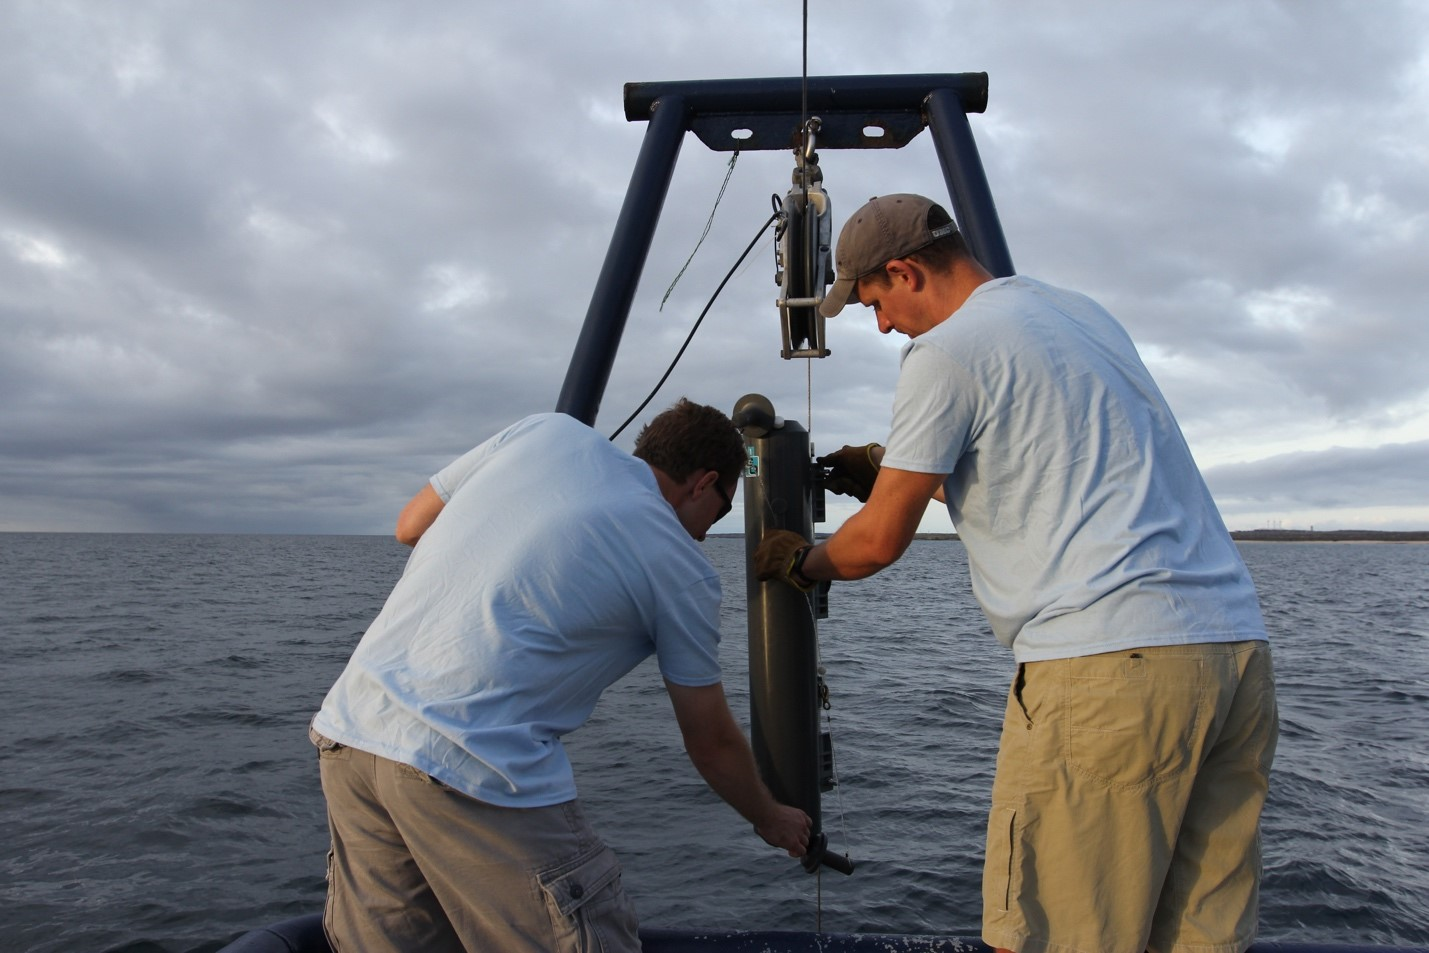 two men prepare a rig that will collect water near the Galapagos